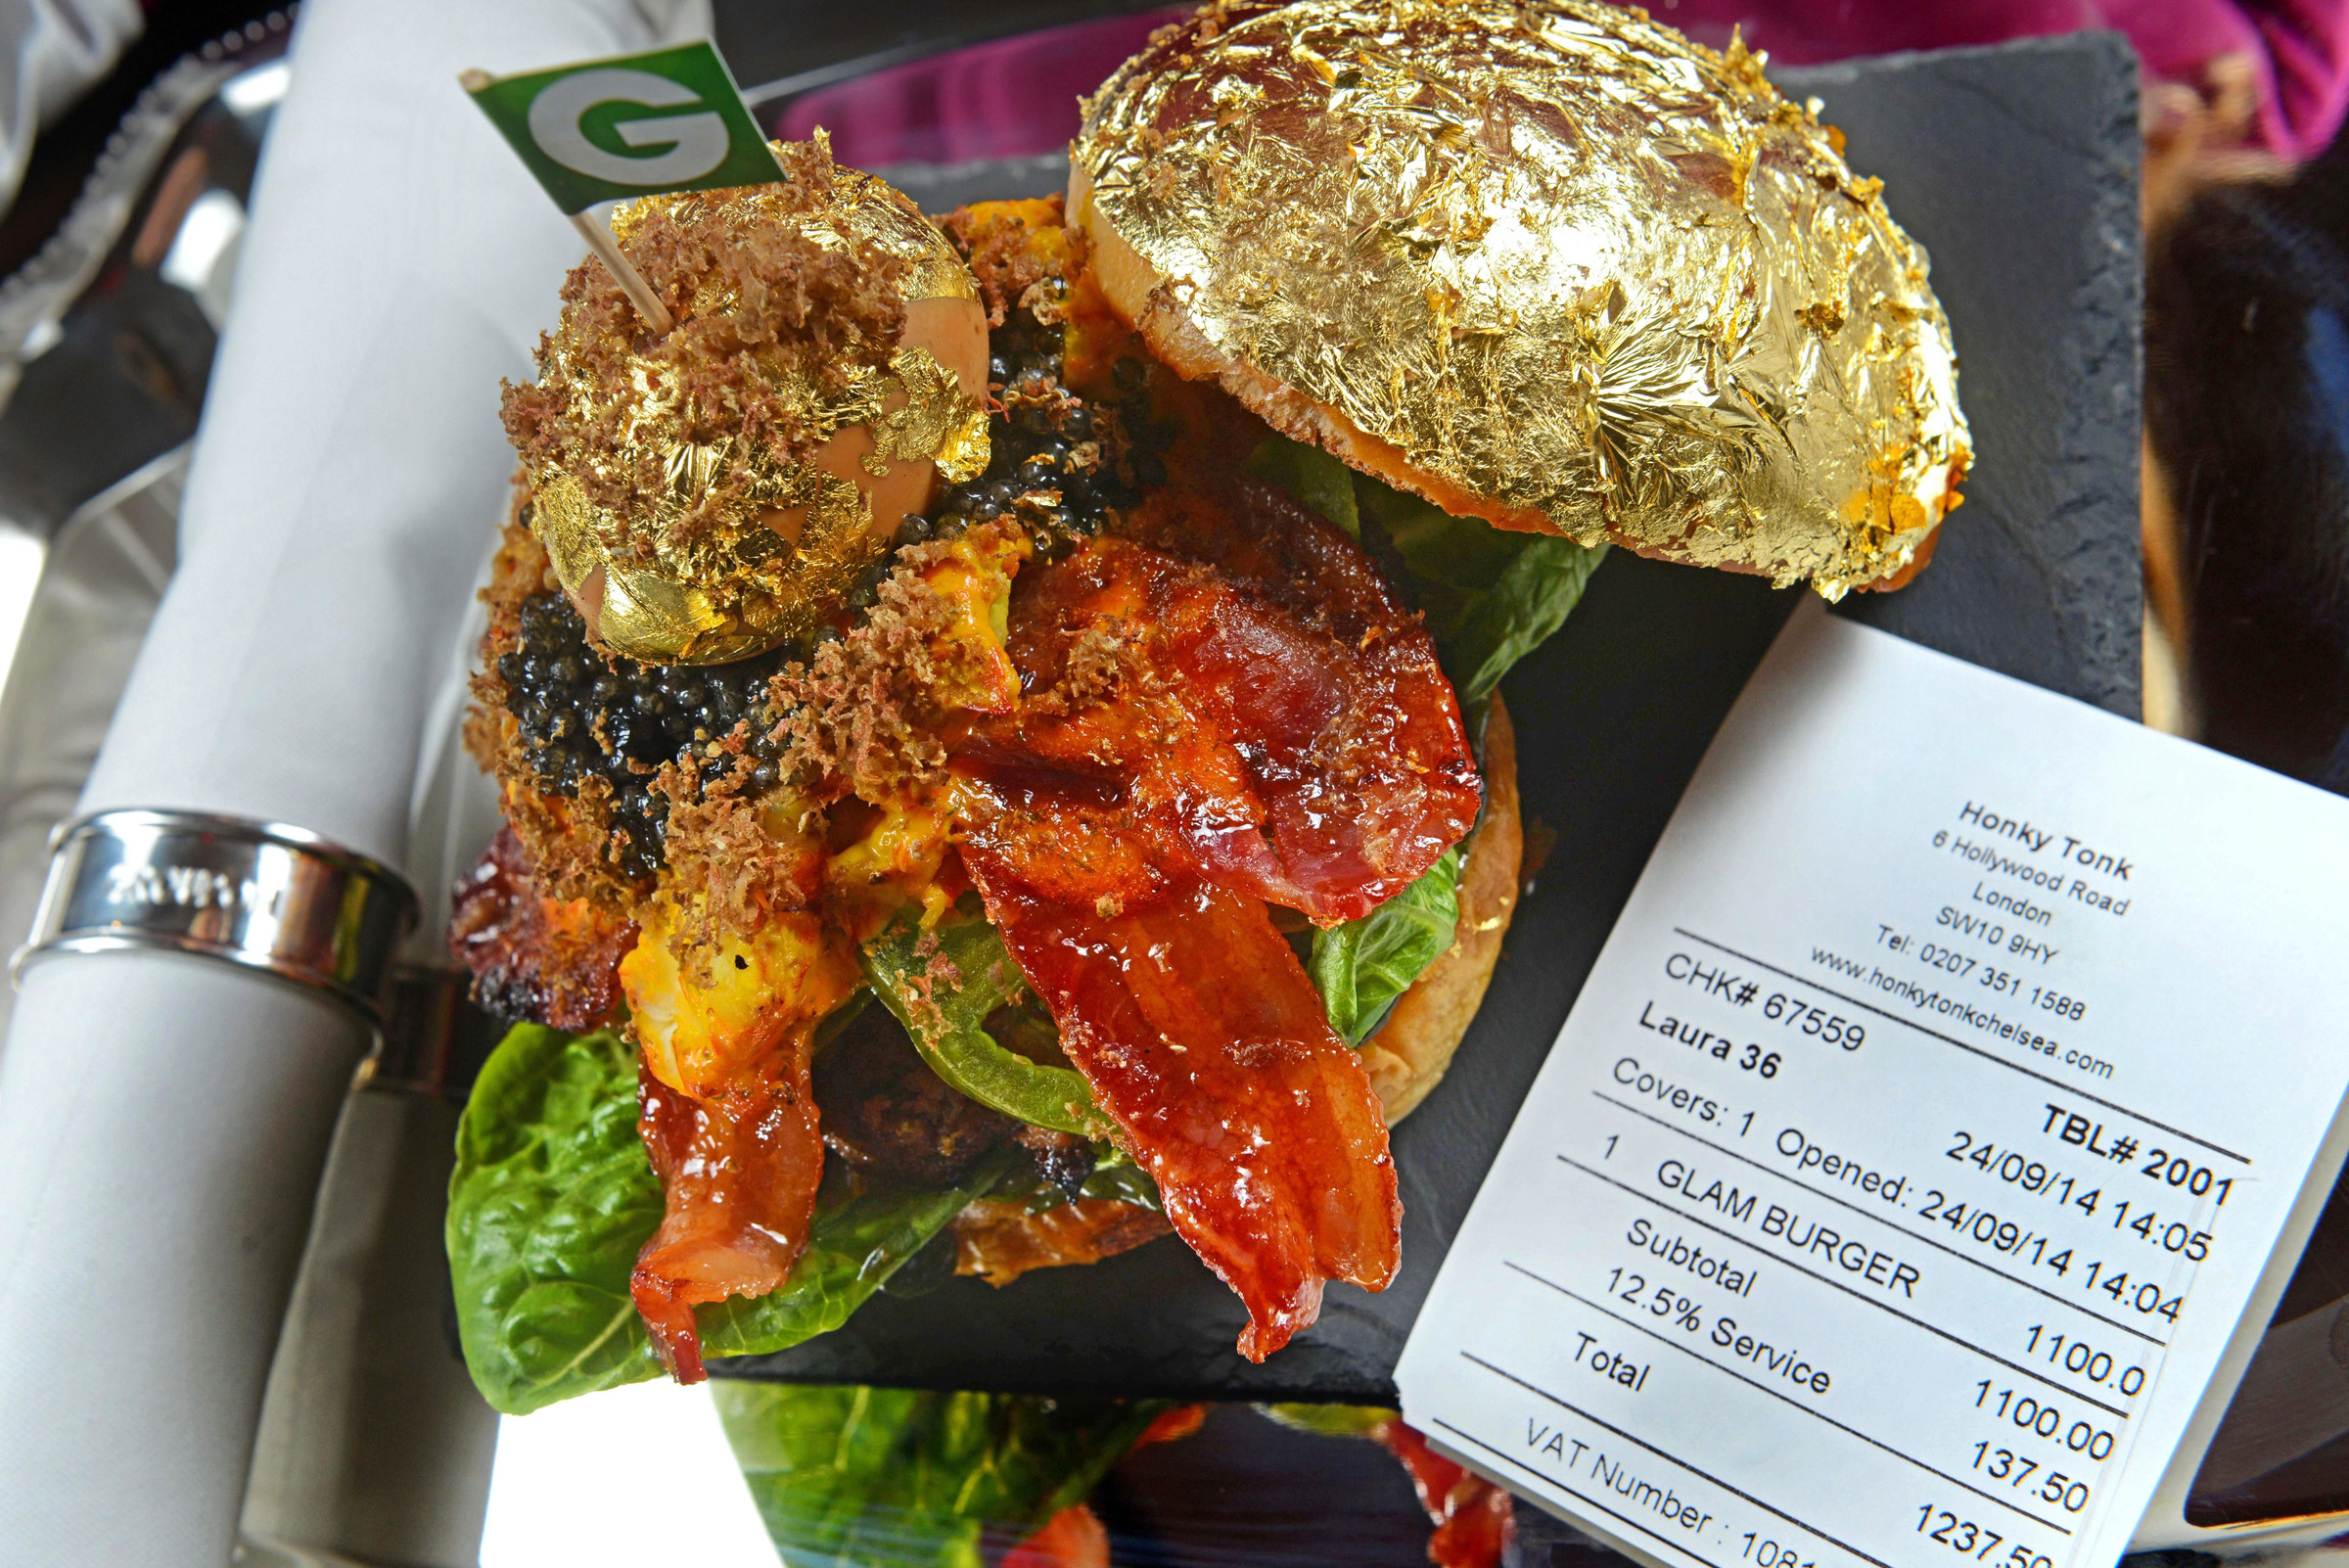 What does a £1,100 burger taste like?